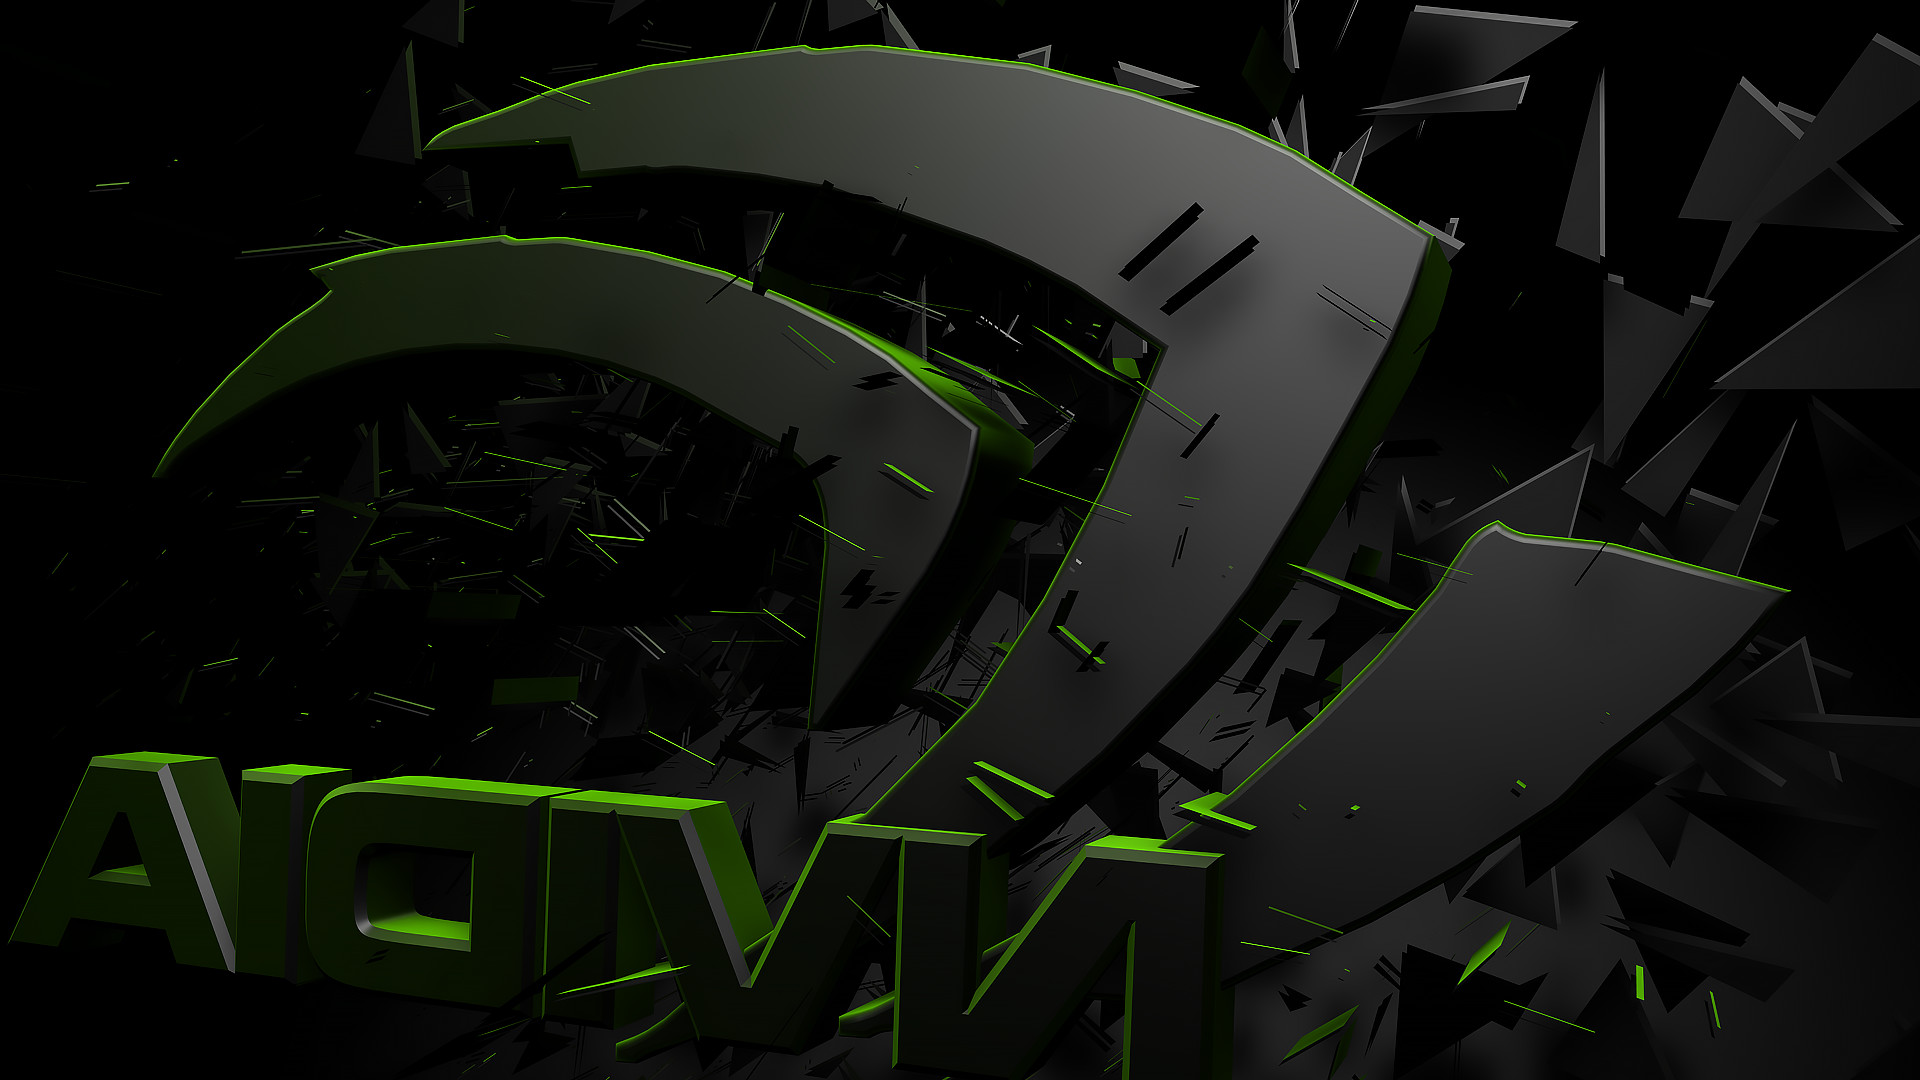 NVIDIA Wallpaper Wallpapers Browse